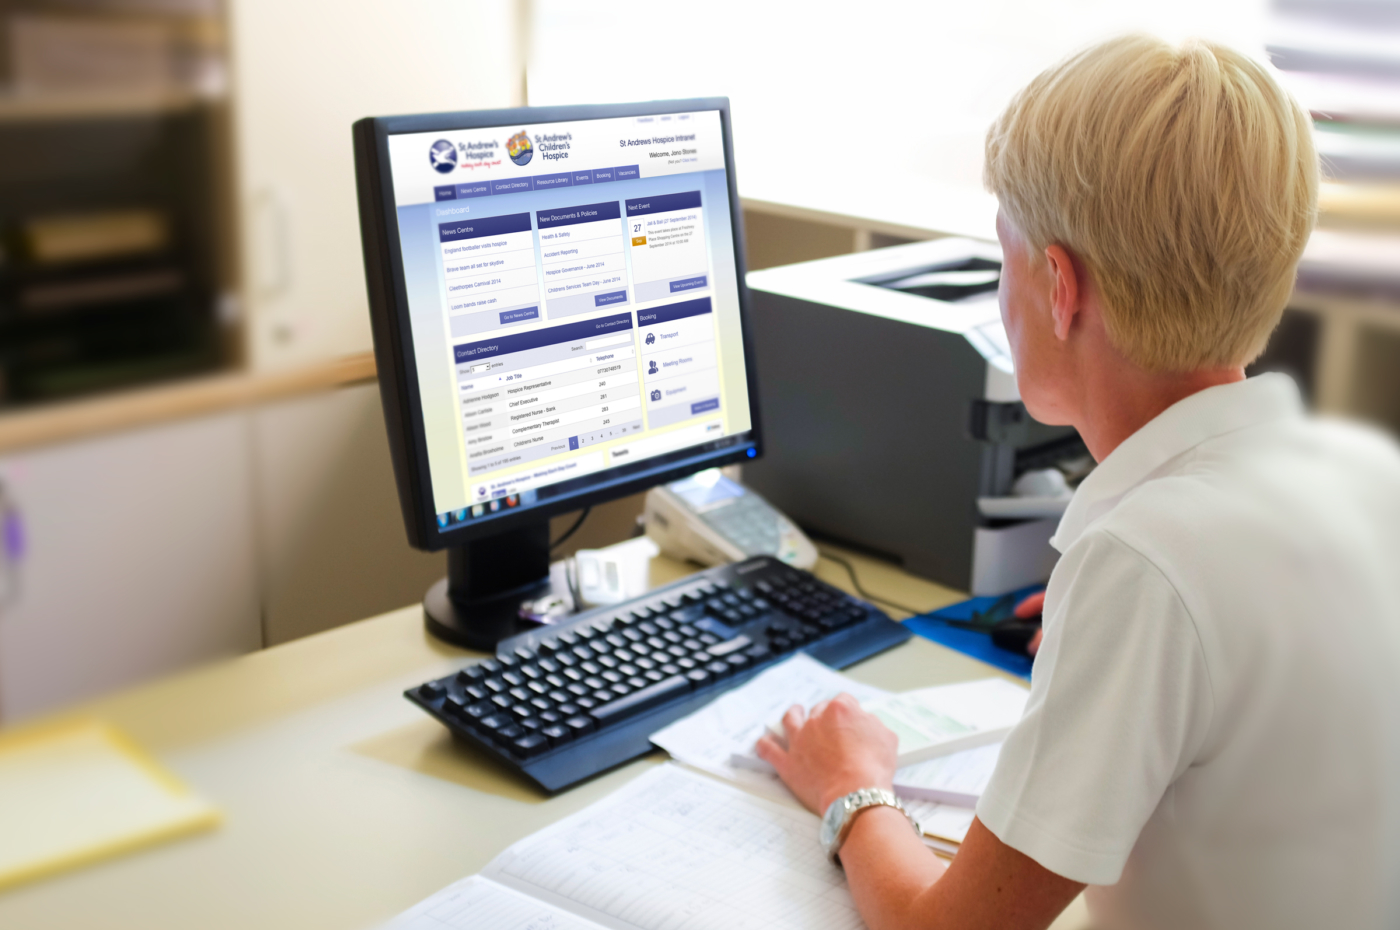 St.Andrews Hospice web development intranet example